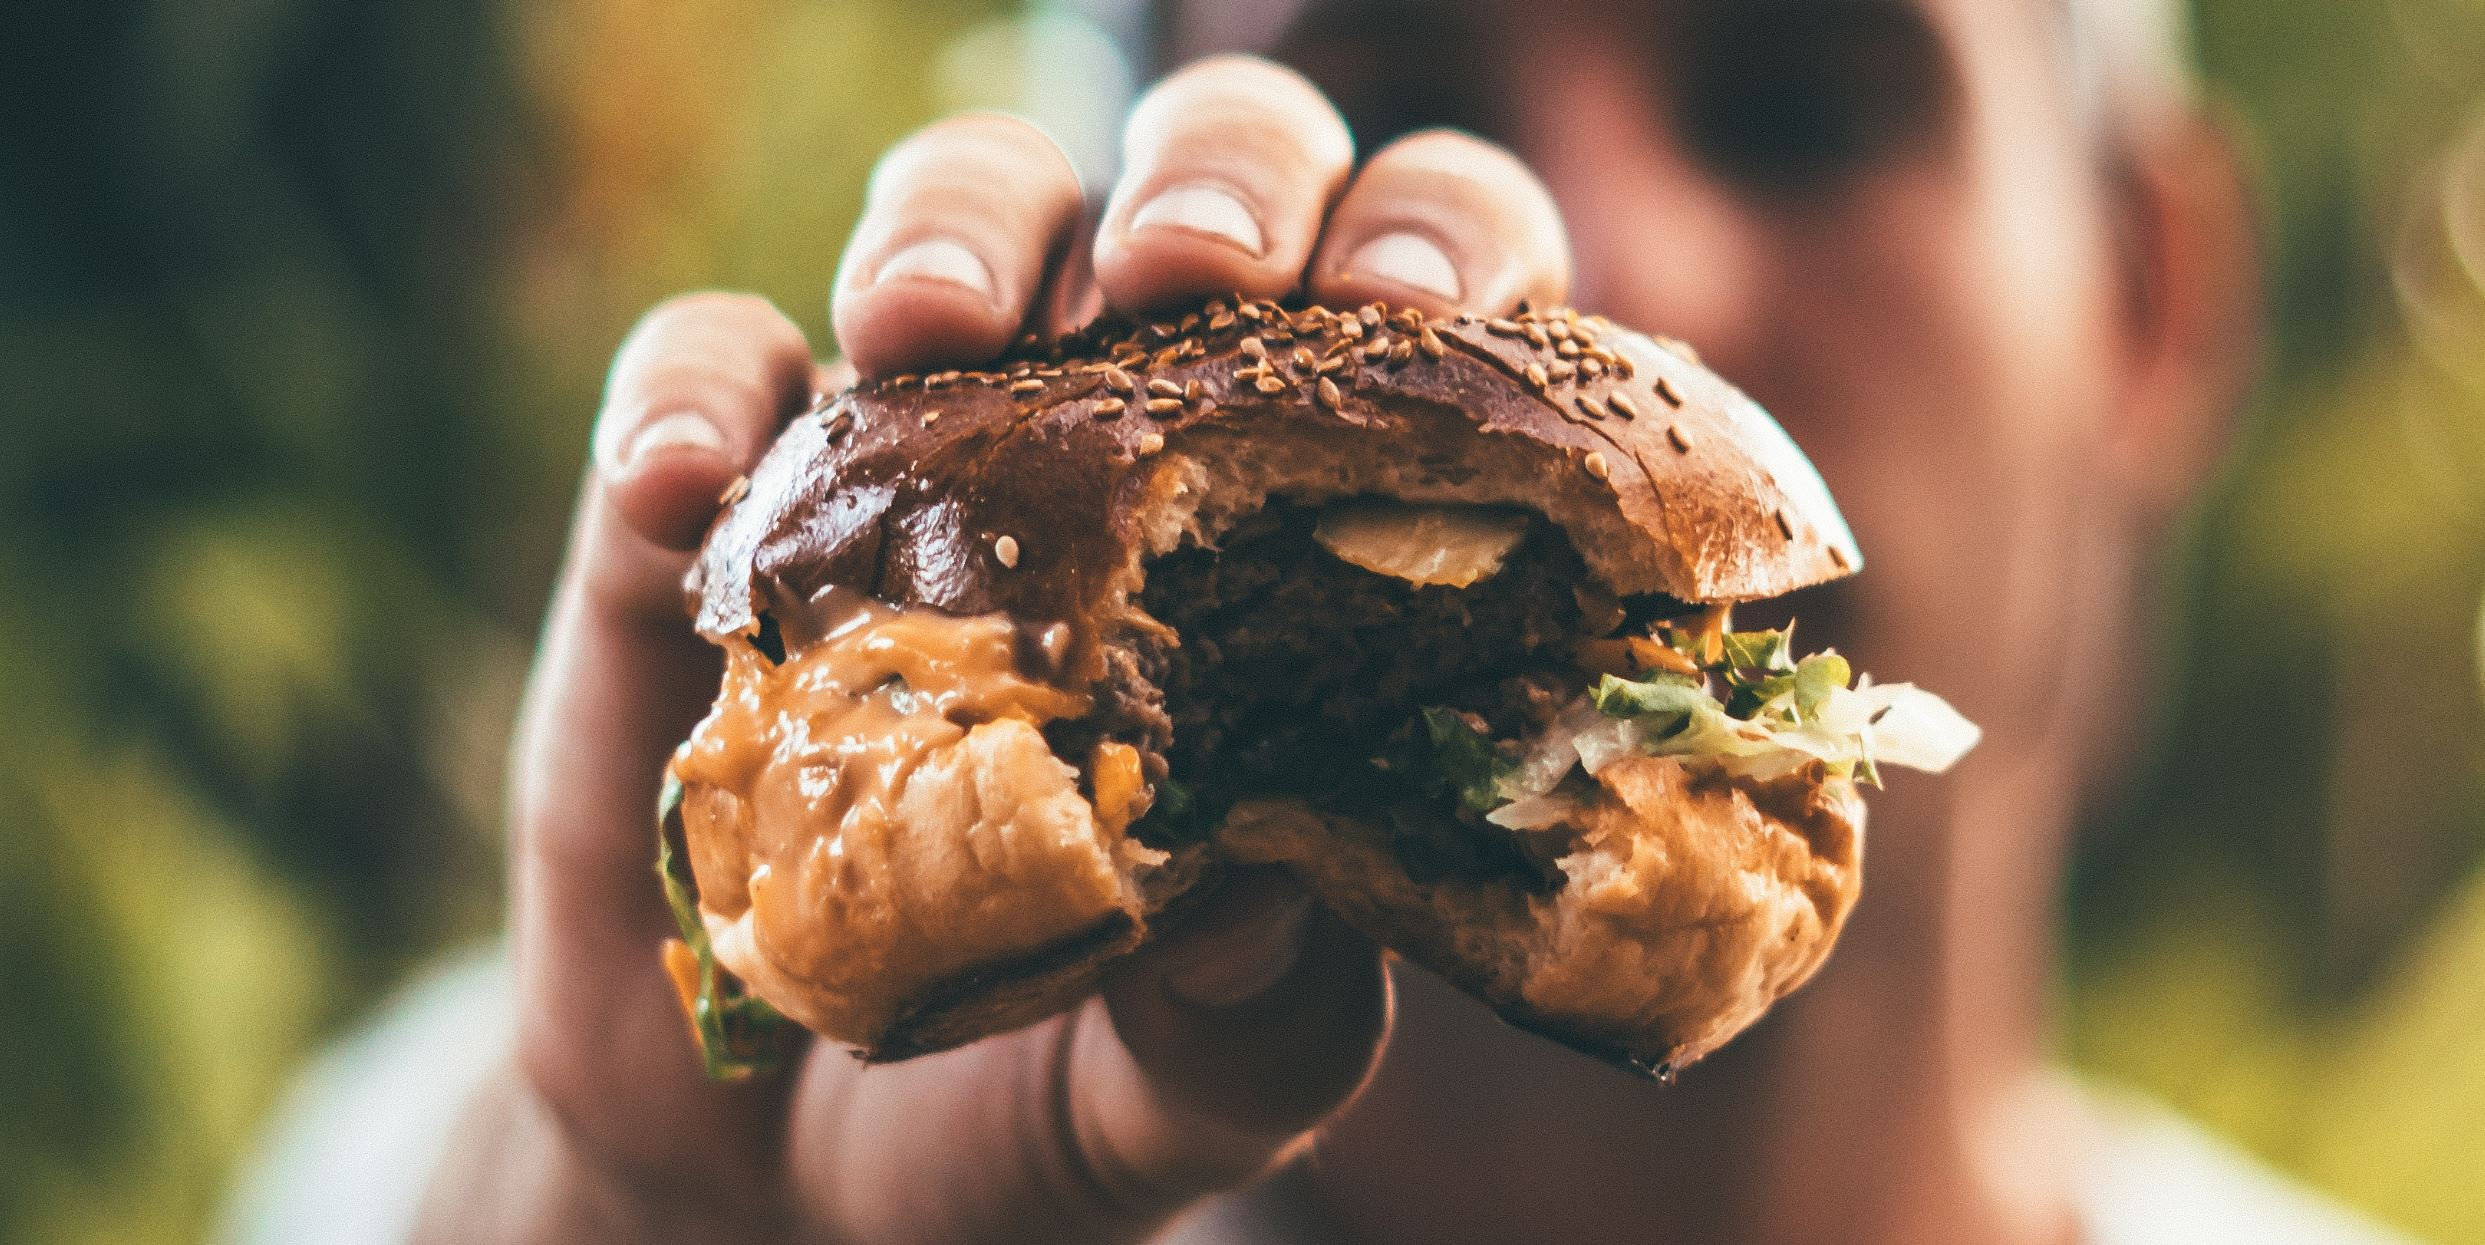 Interested in a juicy burger grown in the lab? - Image Credit:  Oliver Sjöström/Unsplash ,  CC BY